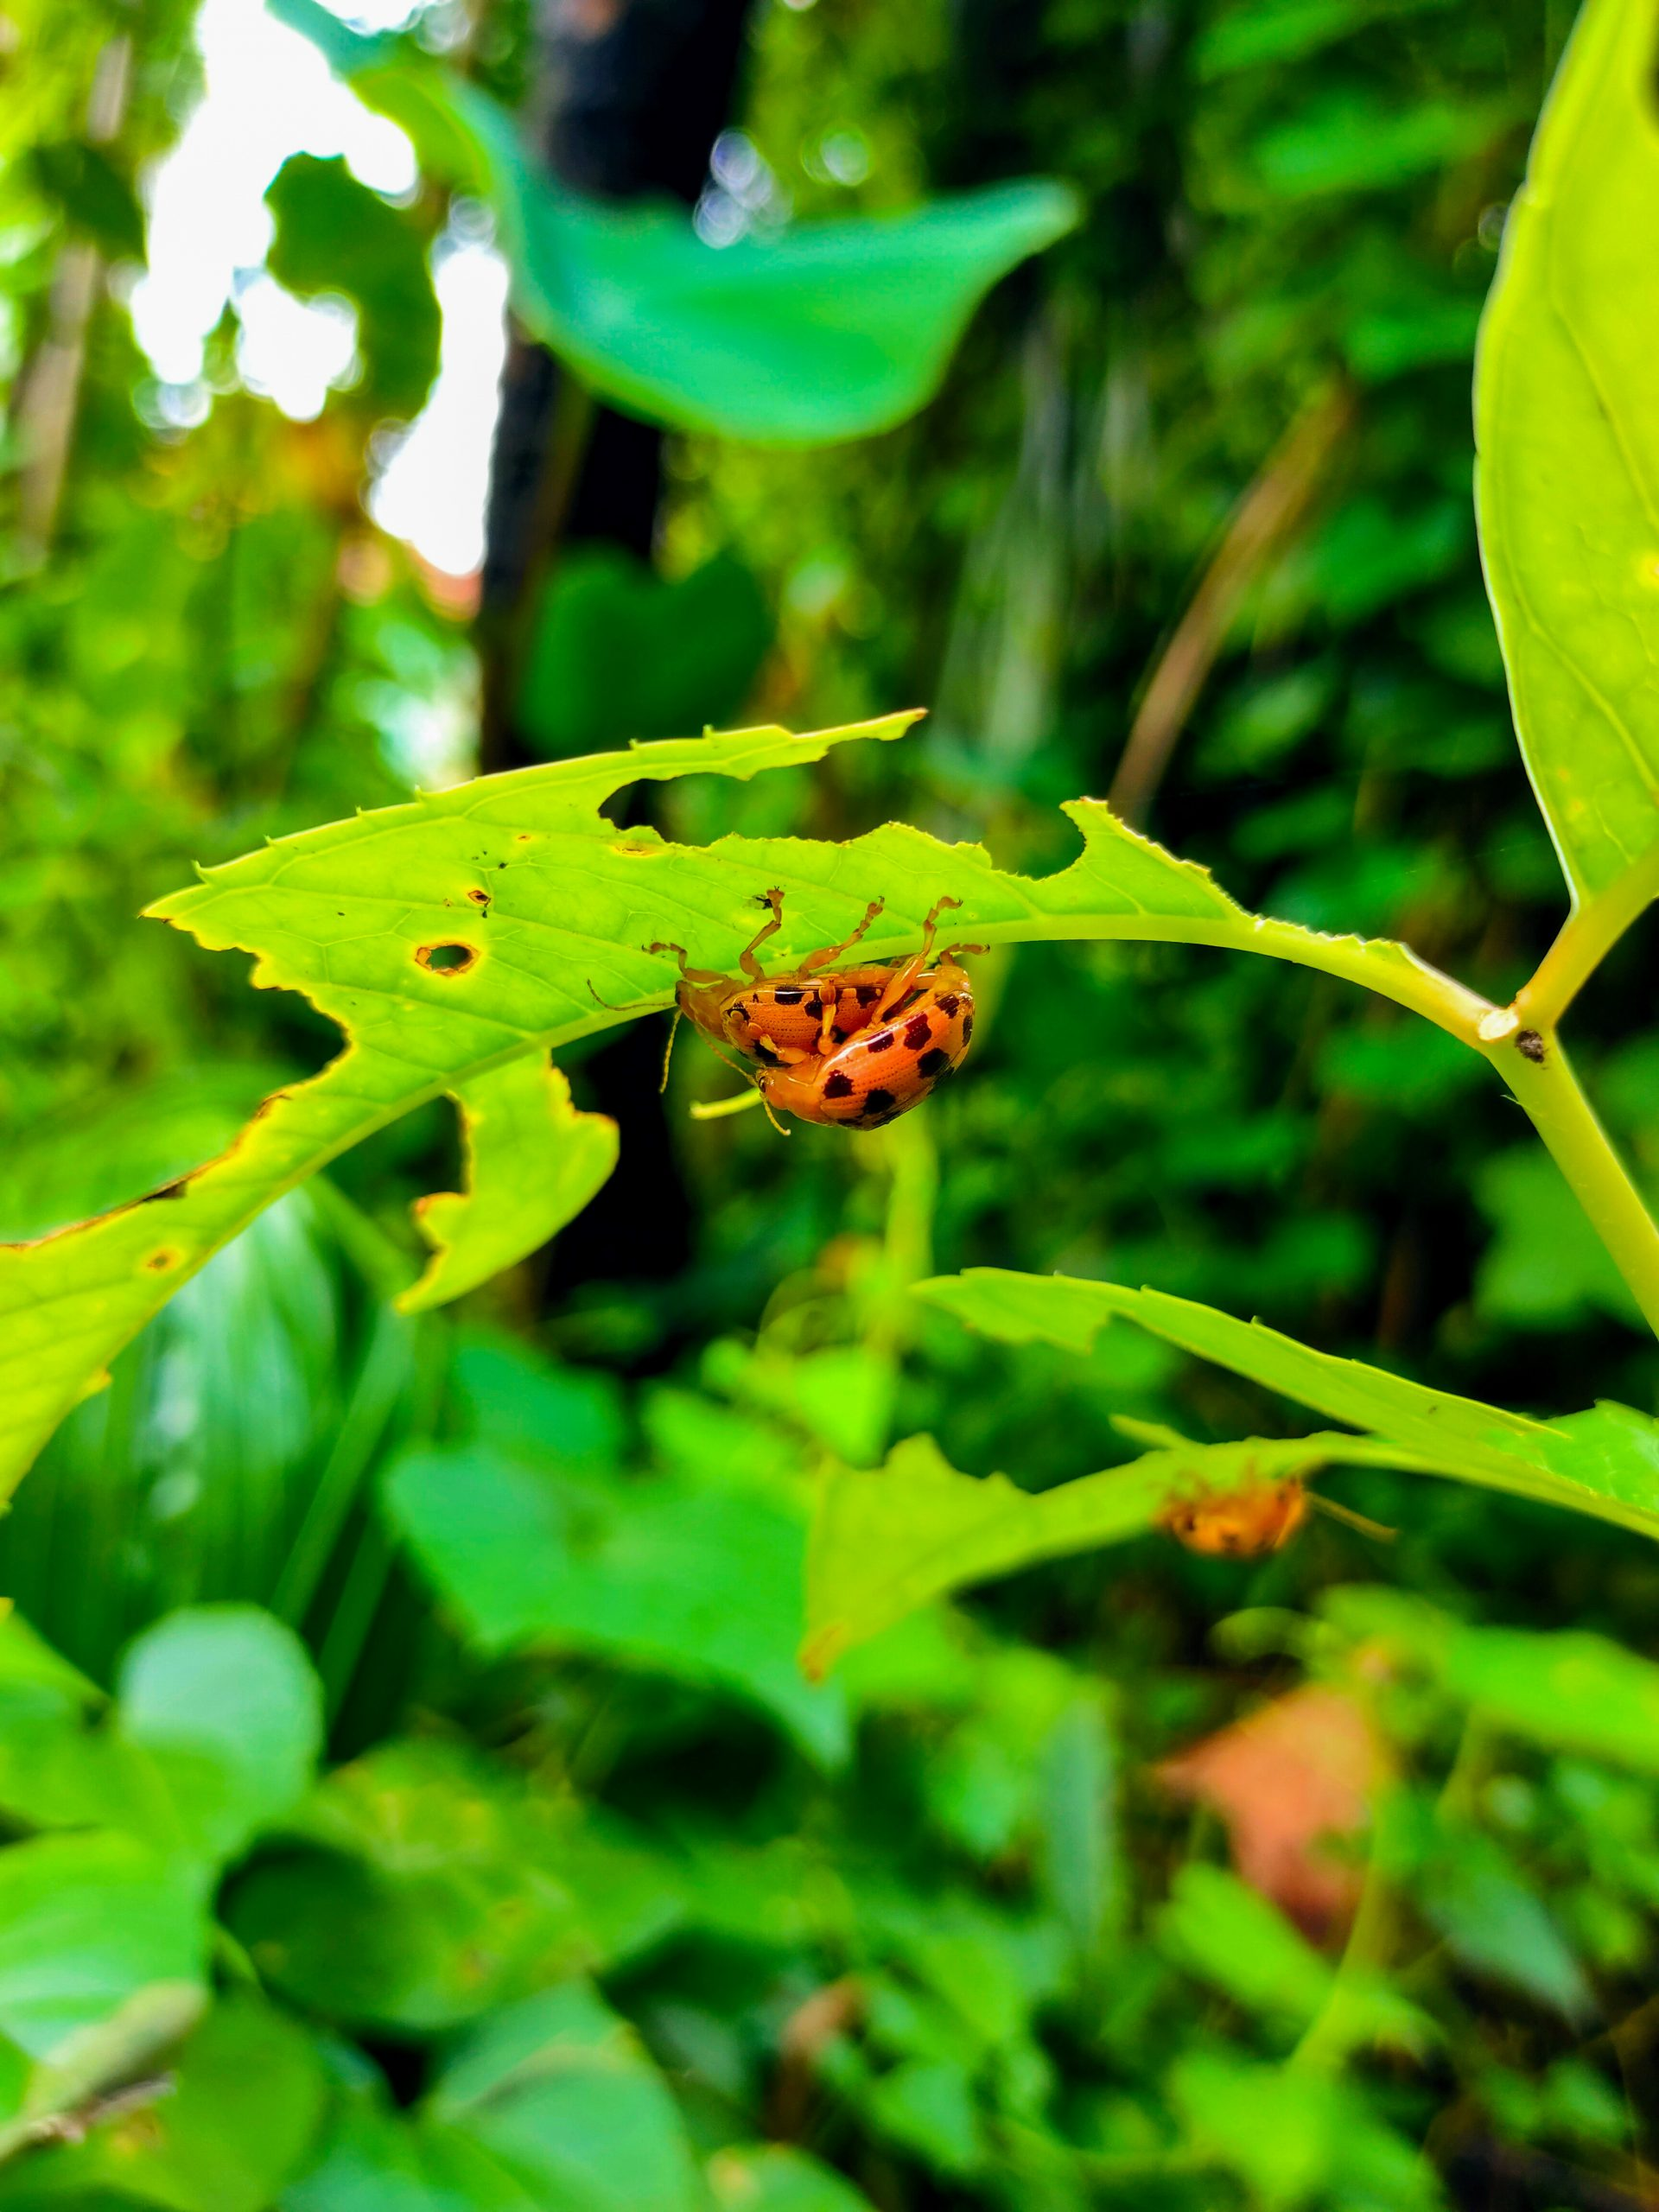 Insects mating under a leaf